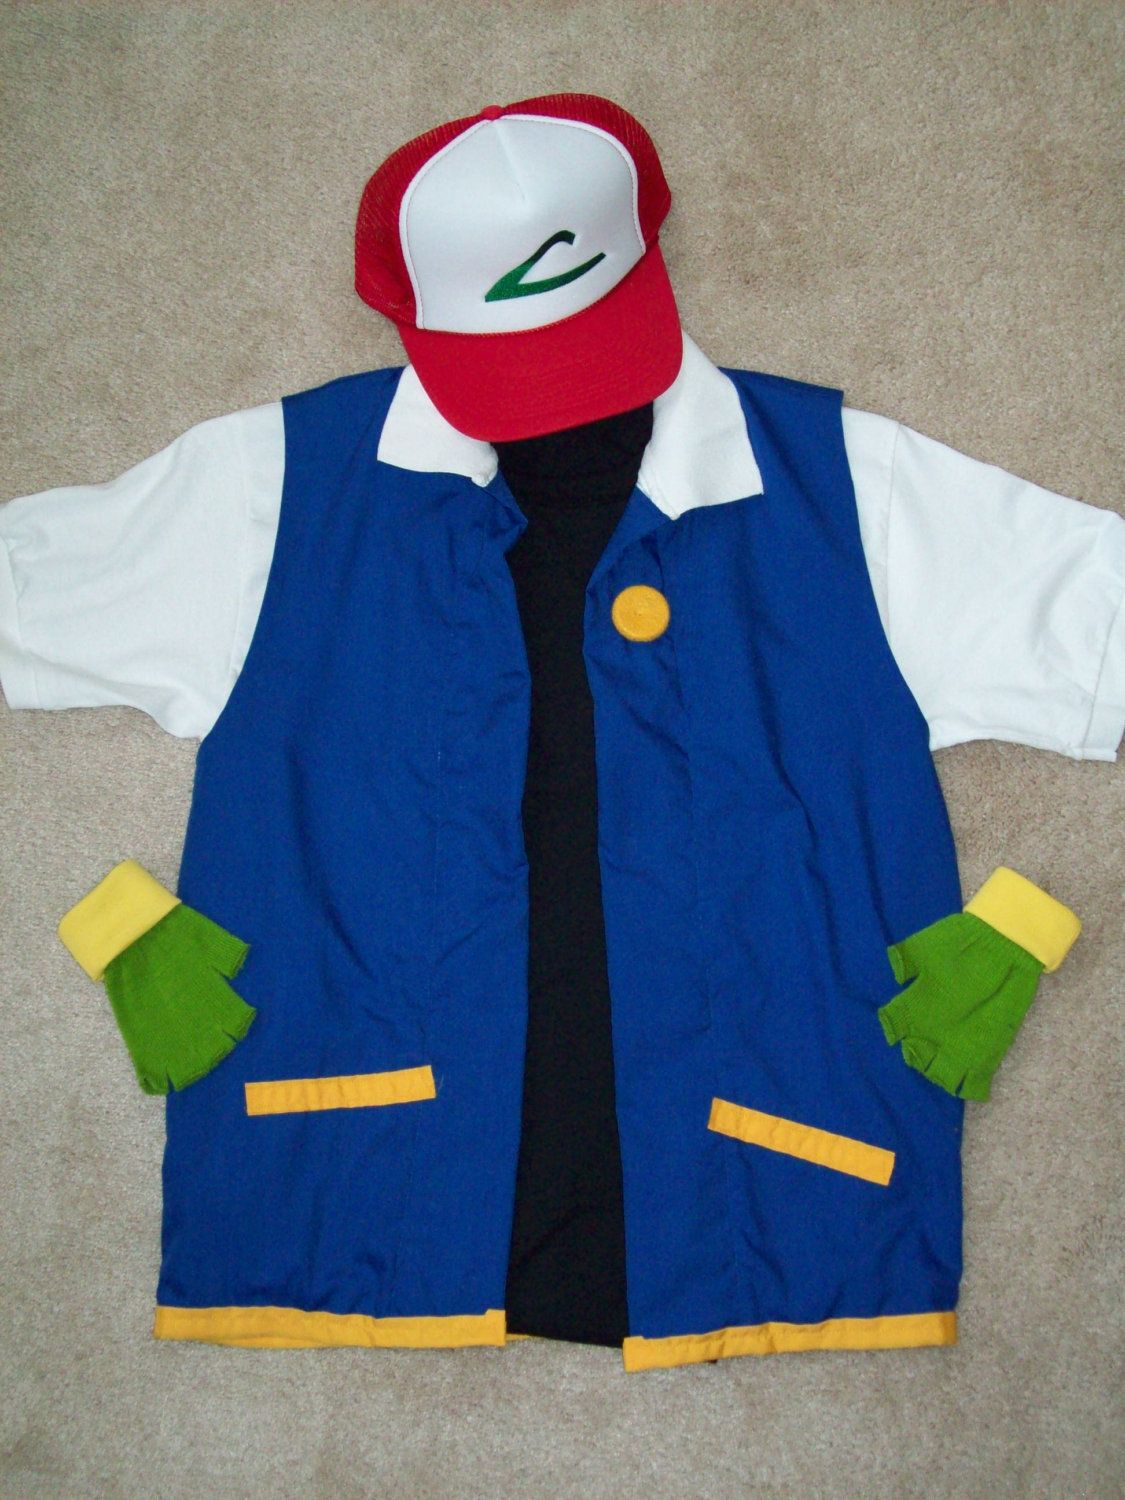 POKEMON Cosplay ASH Ketchum Costume by StellaKlinkerCostume $87.00 & POKEMON Trainer Cosplay- ASH Ketchum Costume - Menu0027s SMALL 4 pc ...